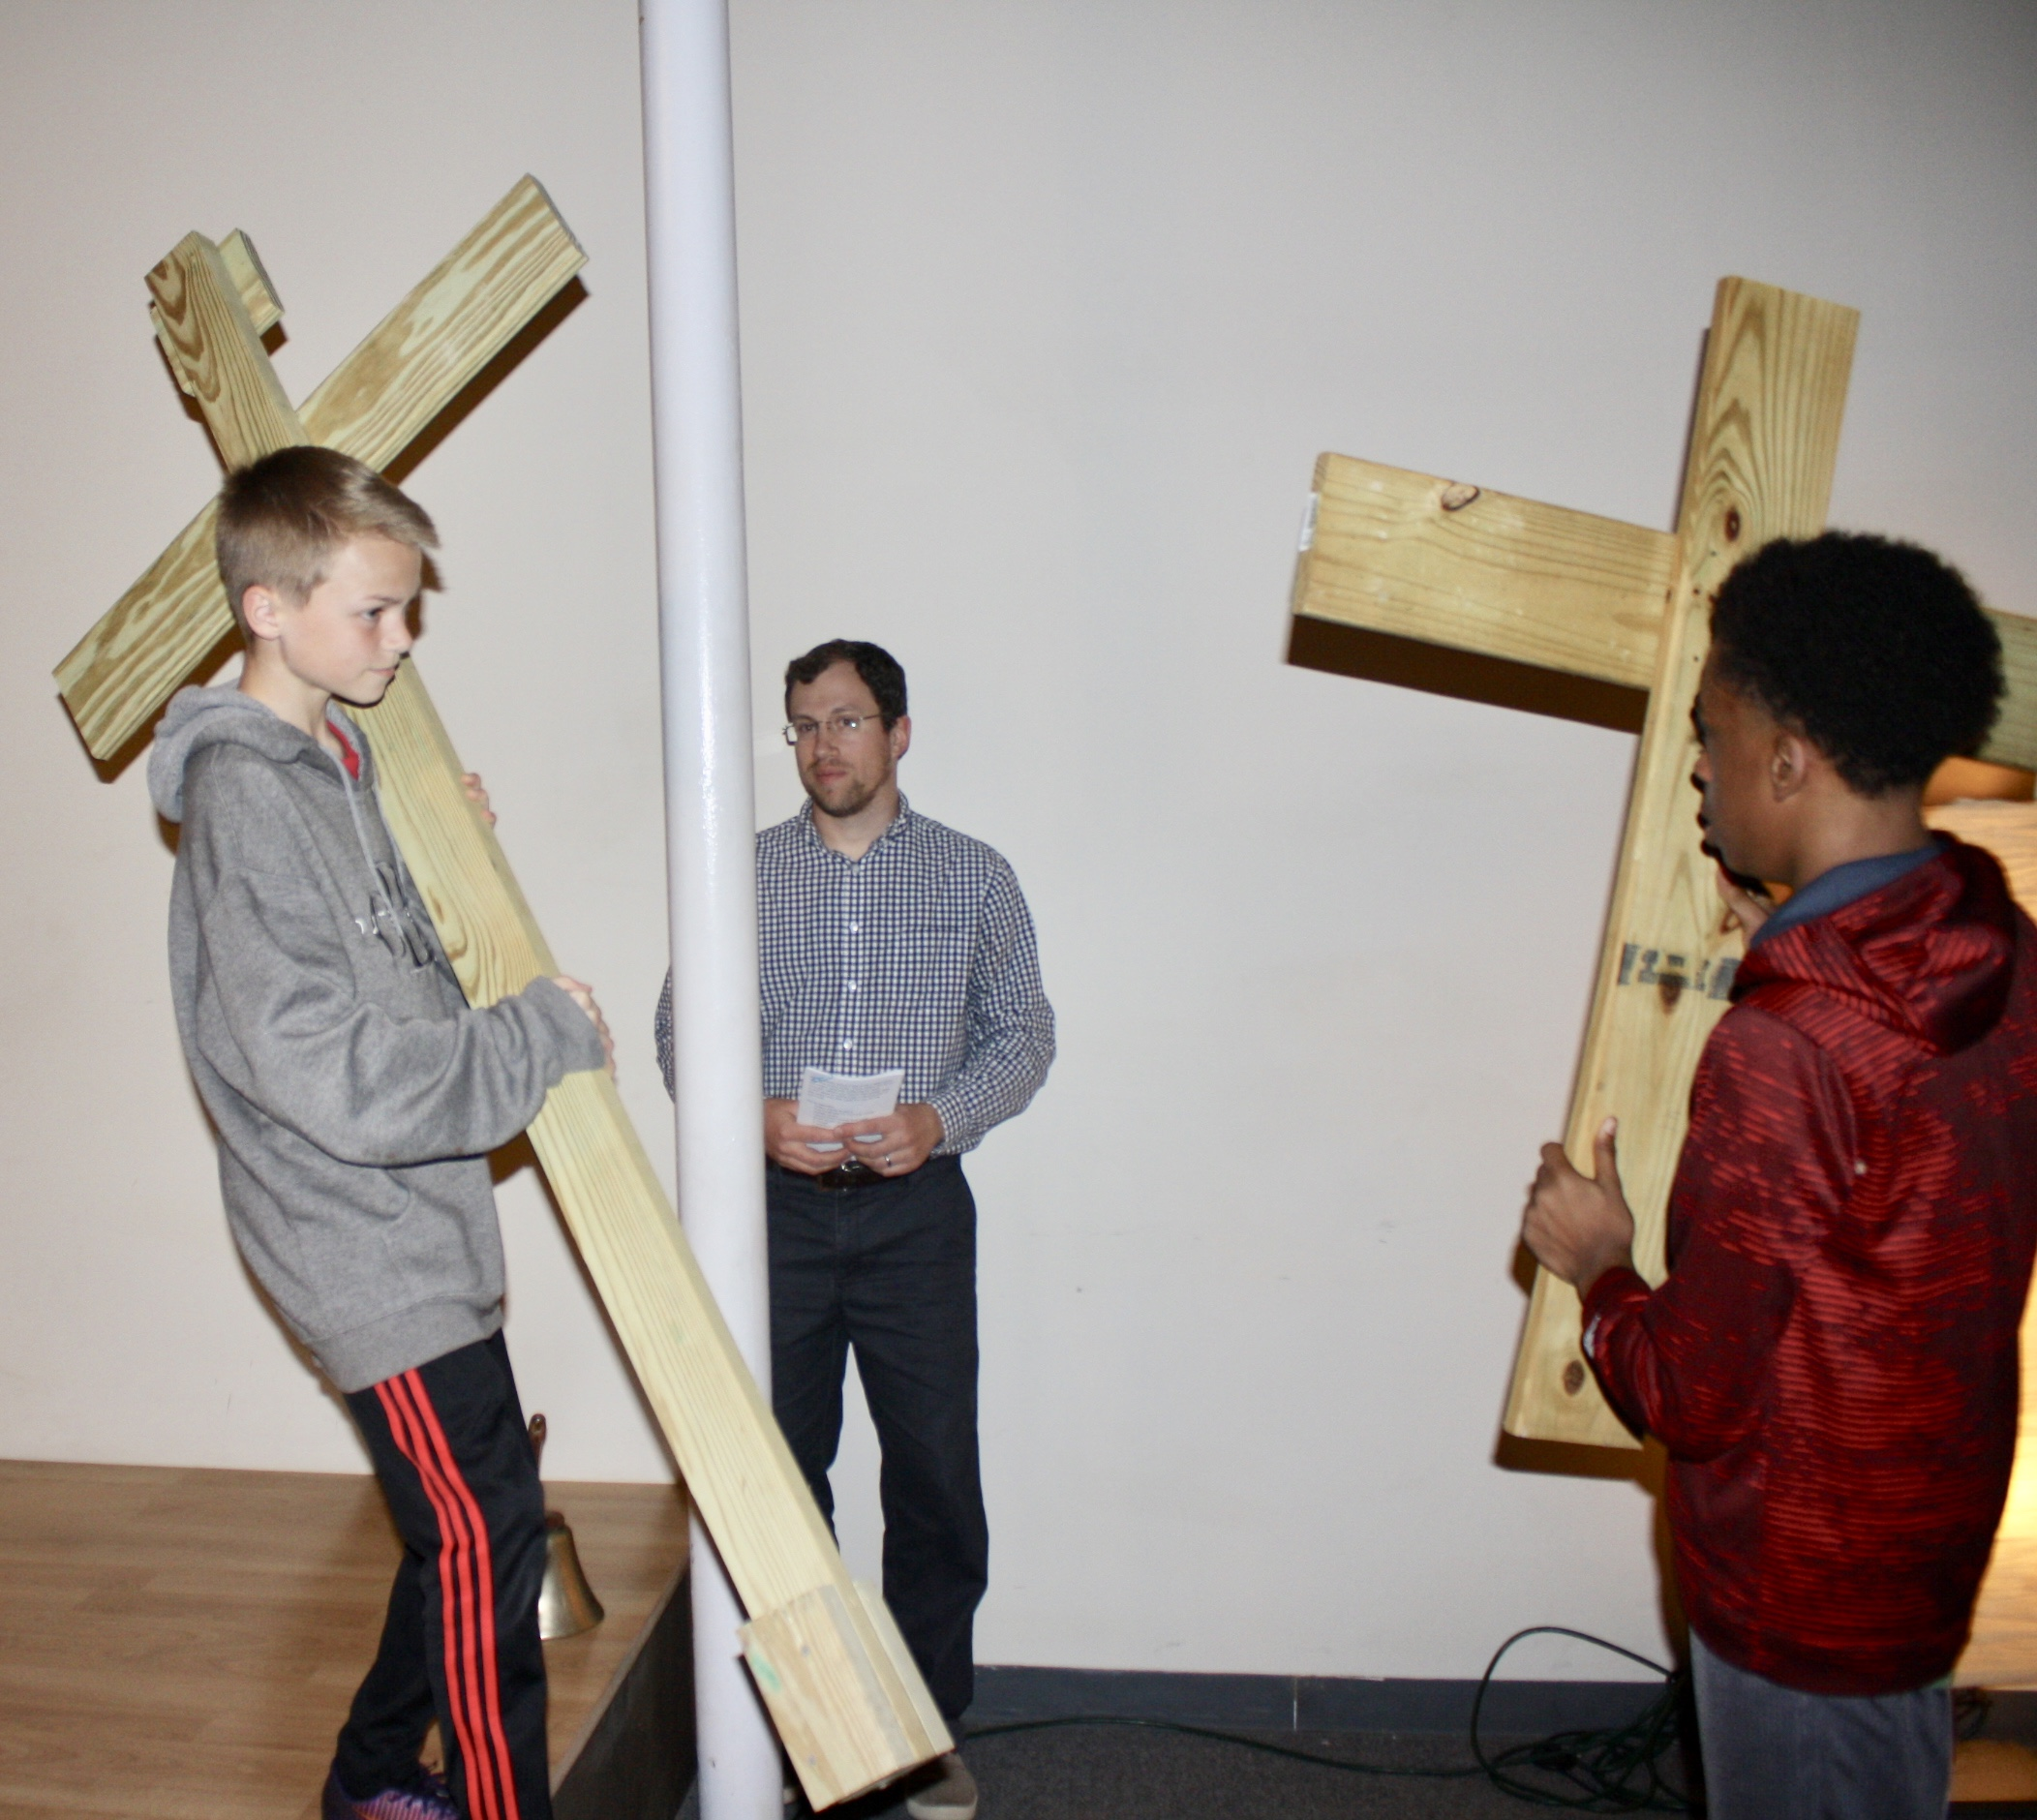 Youth Participation At One of the Ash Wednesday Stations